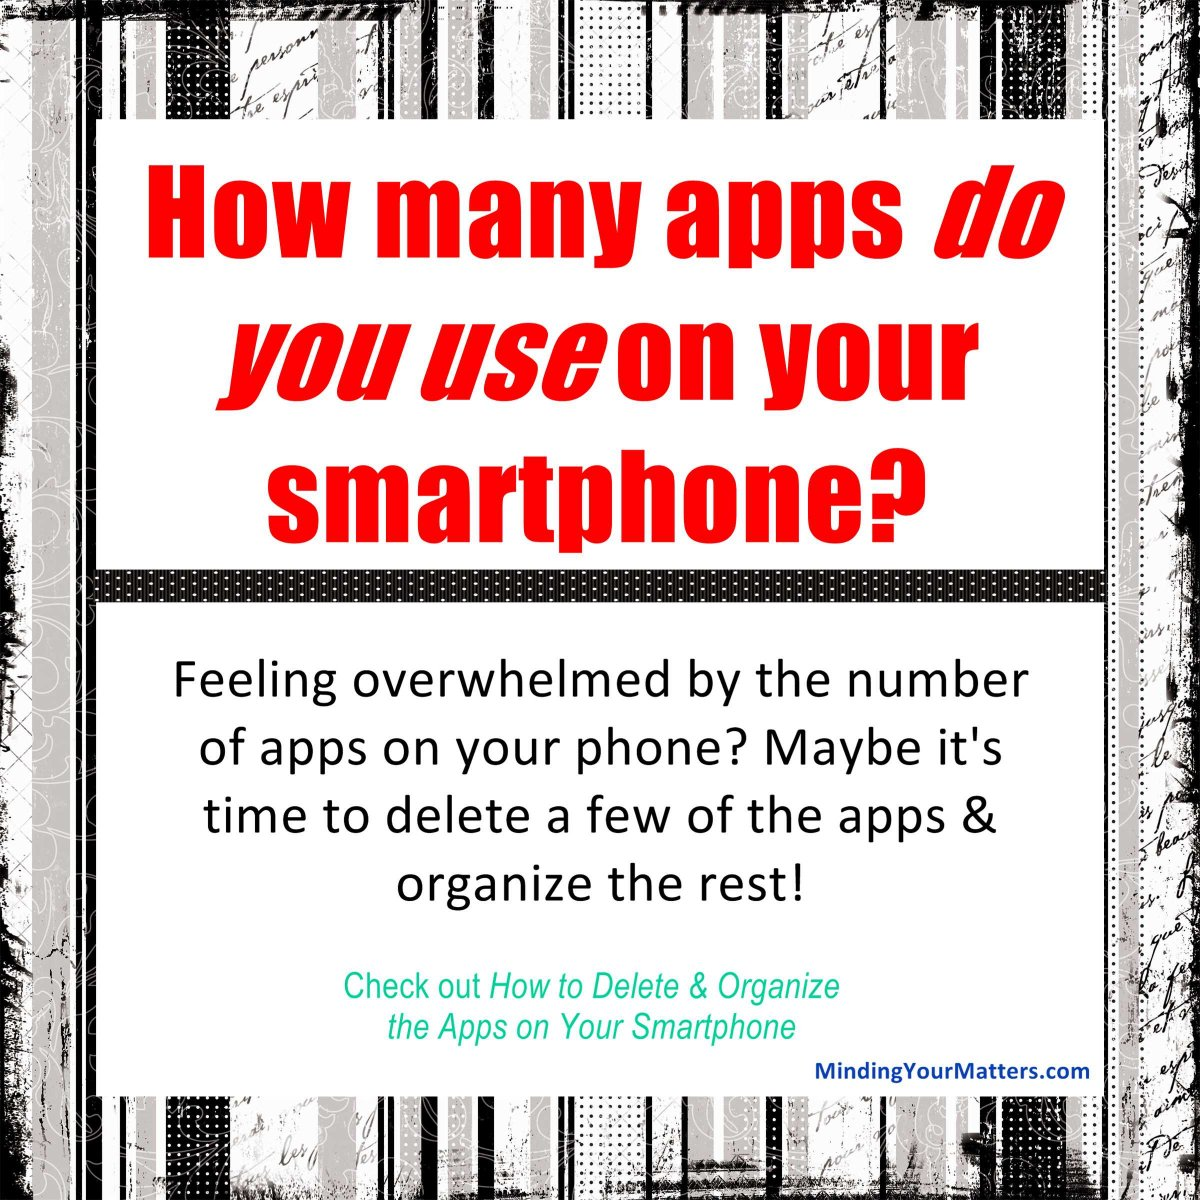 10 Organizing Apps: QUICK! Without Looking At Your Smartphone (or Leaving This